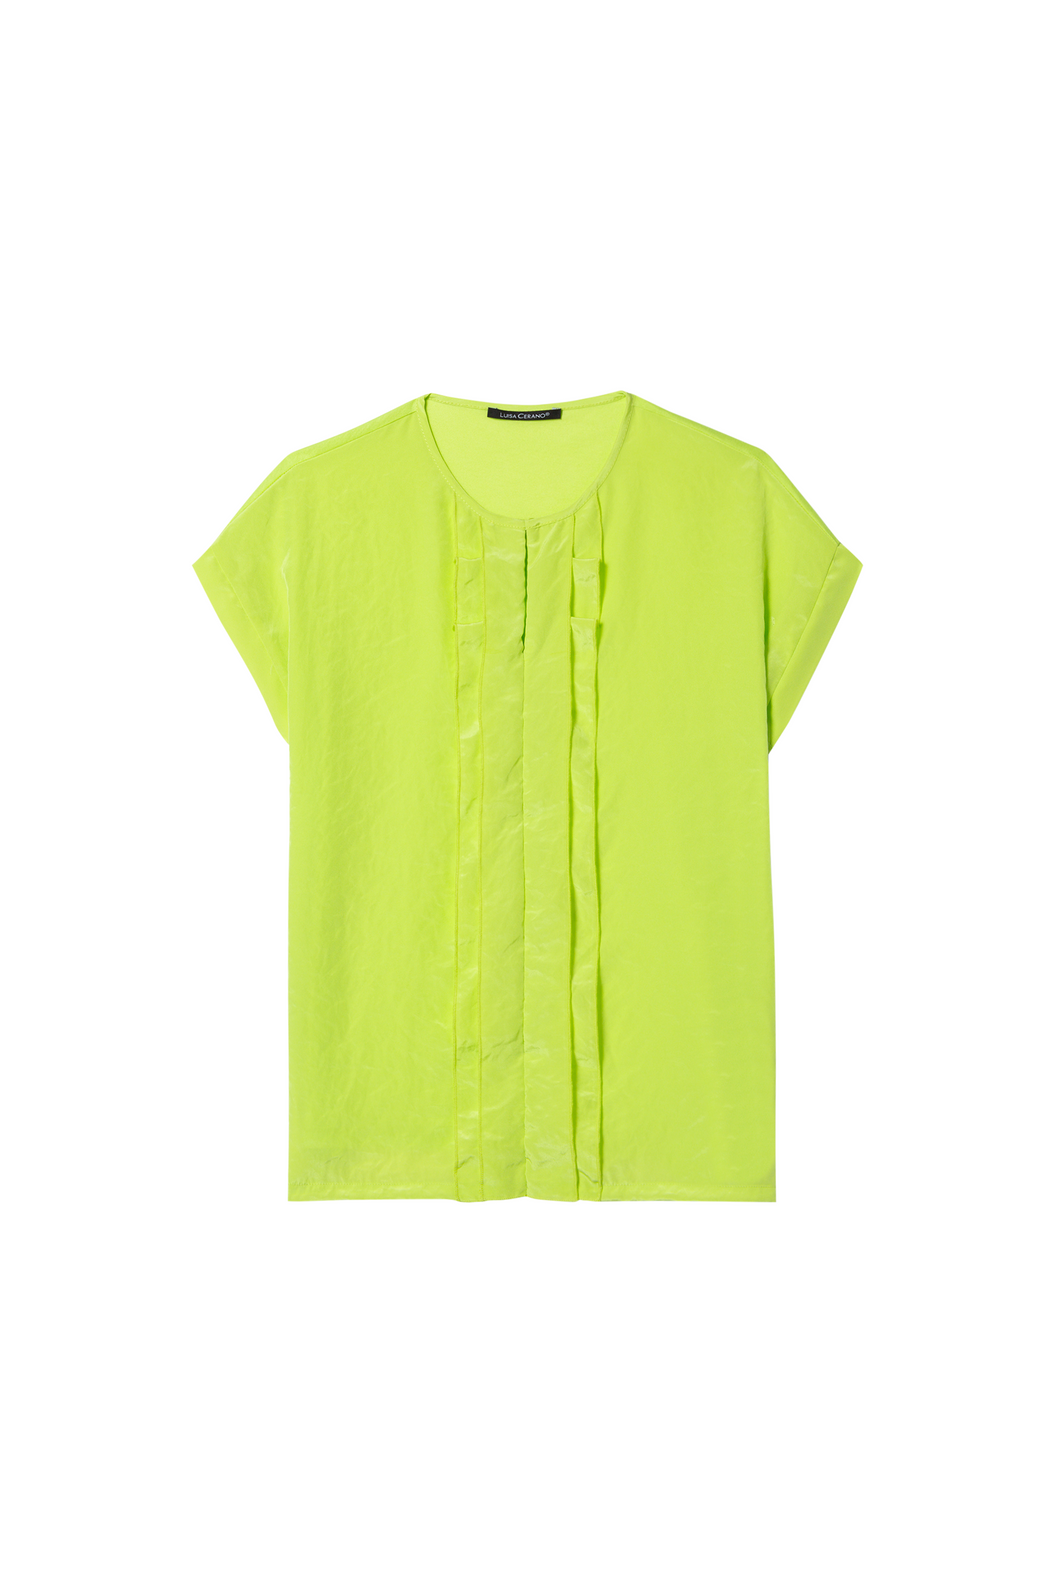 Luisa Cerano Blouse - Lime - 318580/7522